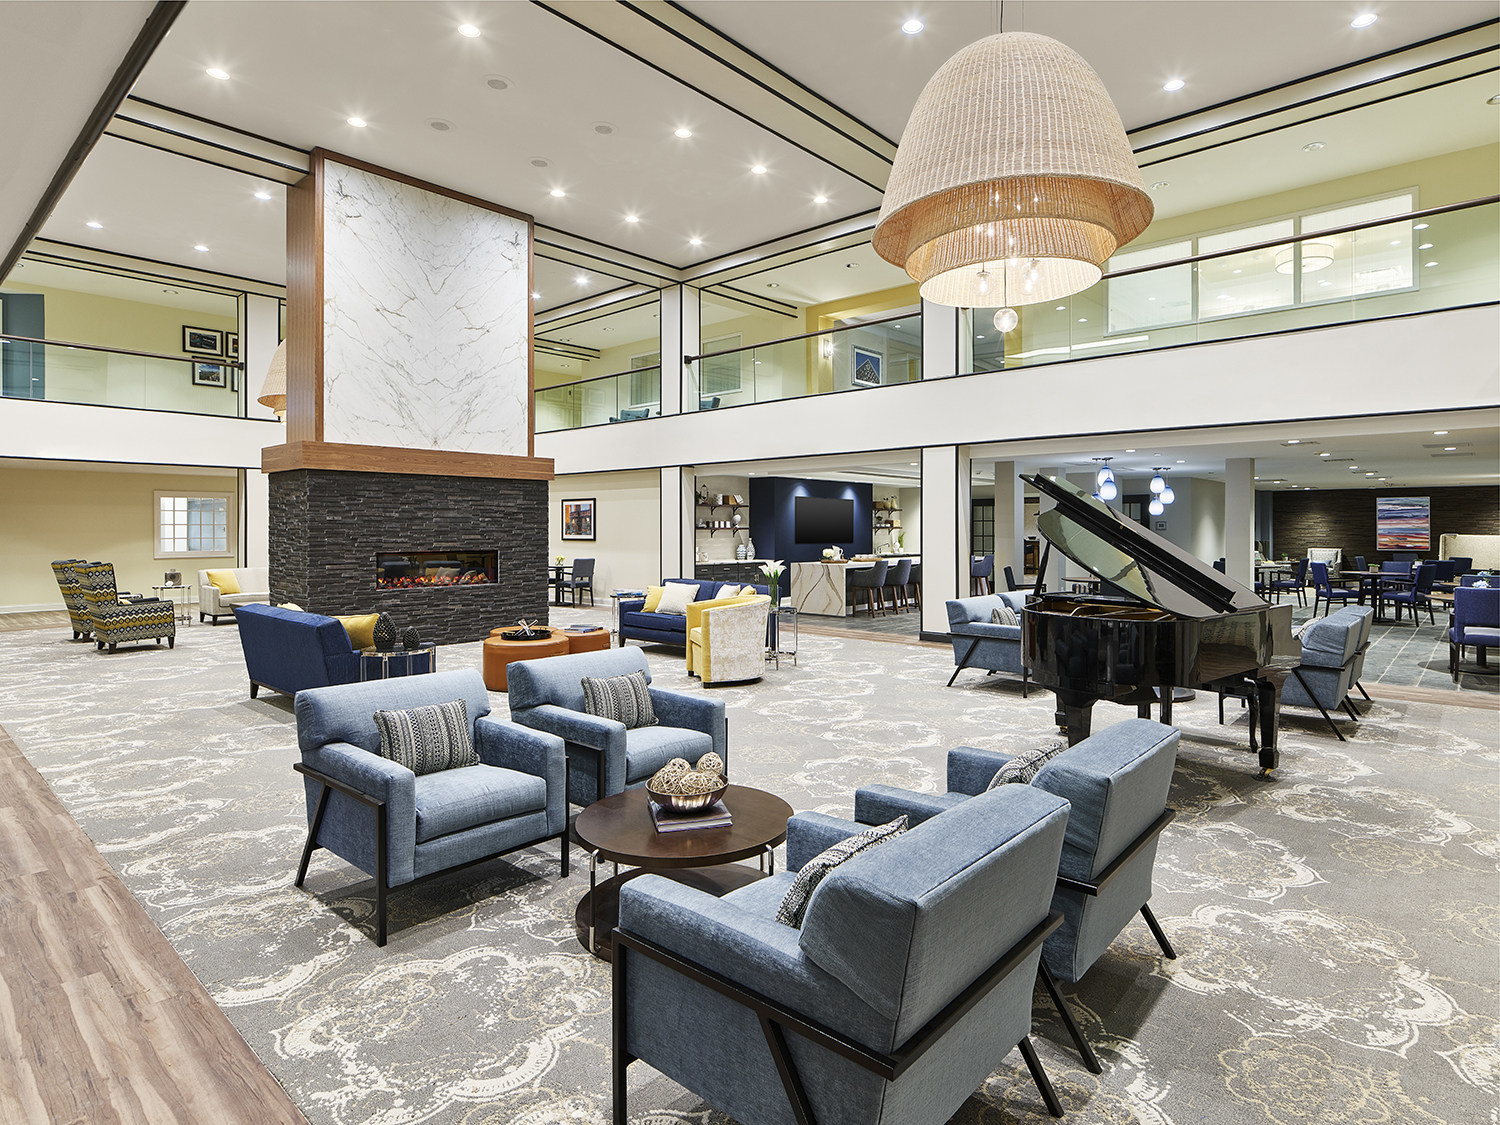 Residences at Plainview 55+ Luxury Apartment Community Opens State-of-the-Art Independent Living Environment in Plainview, New York